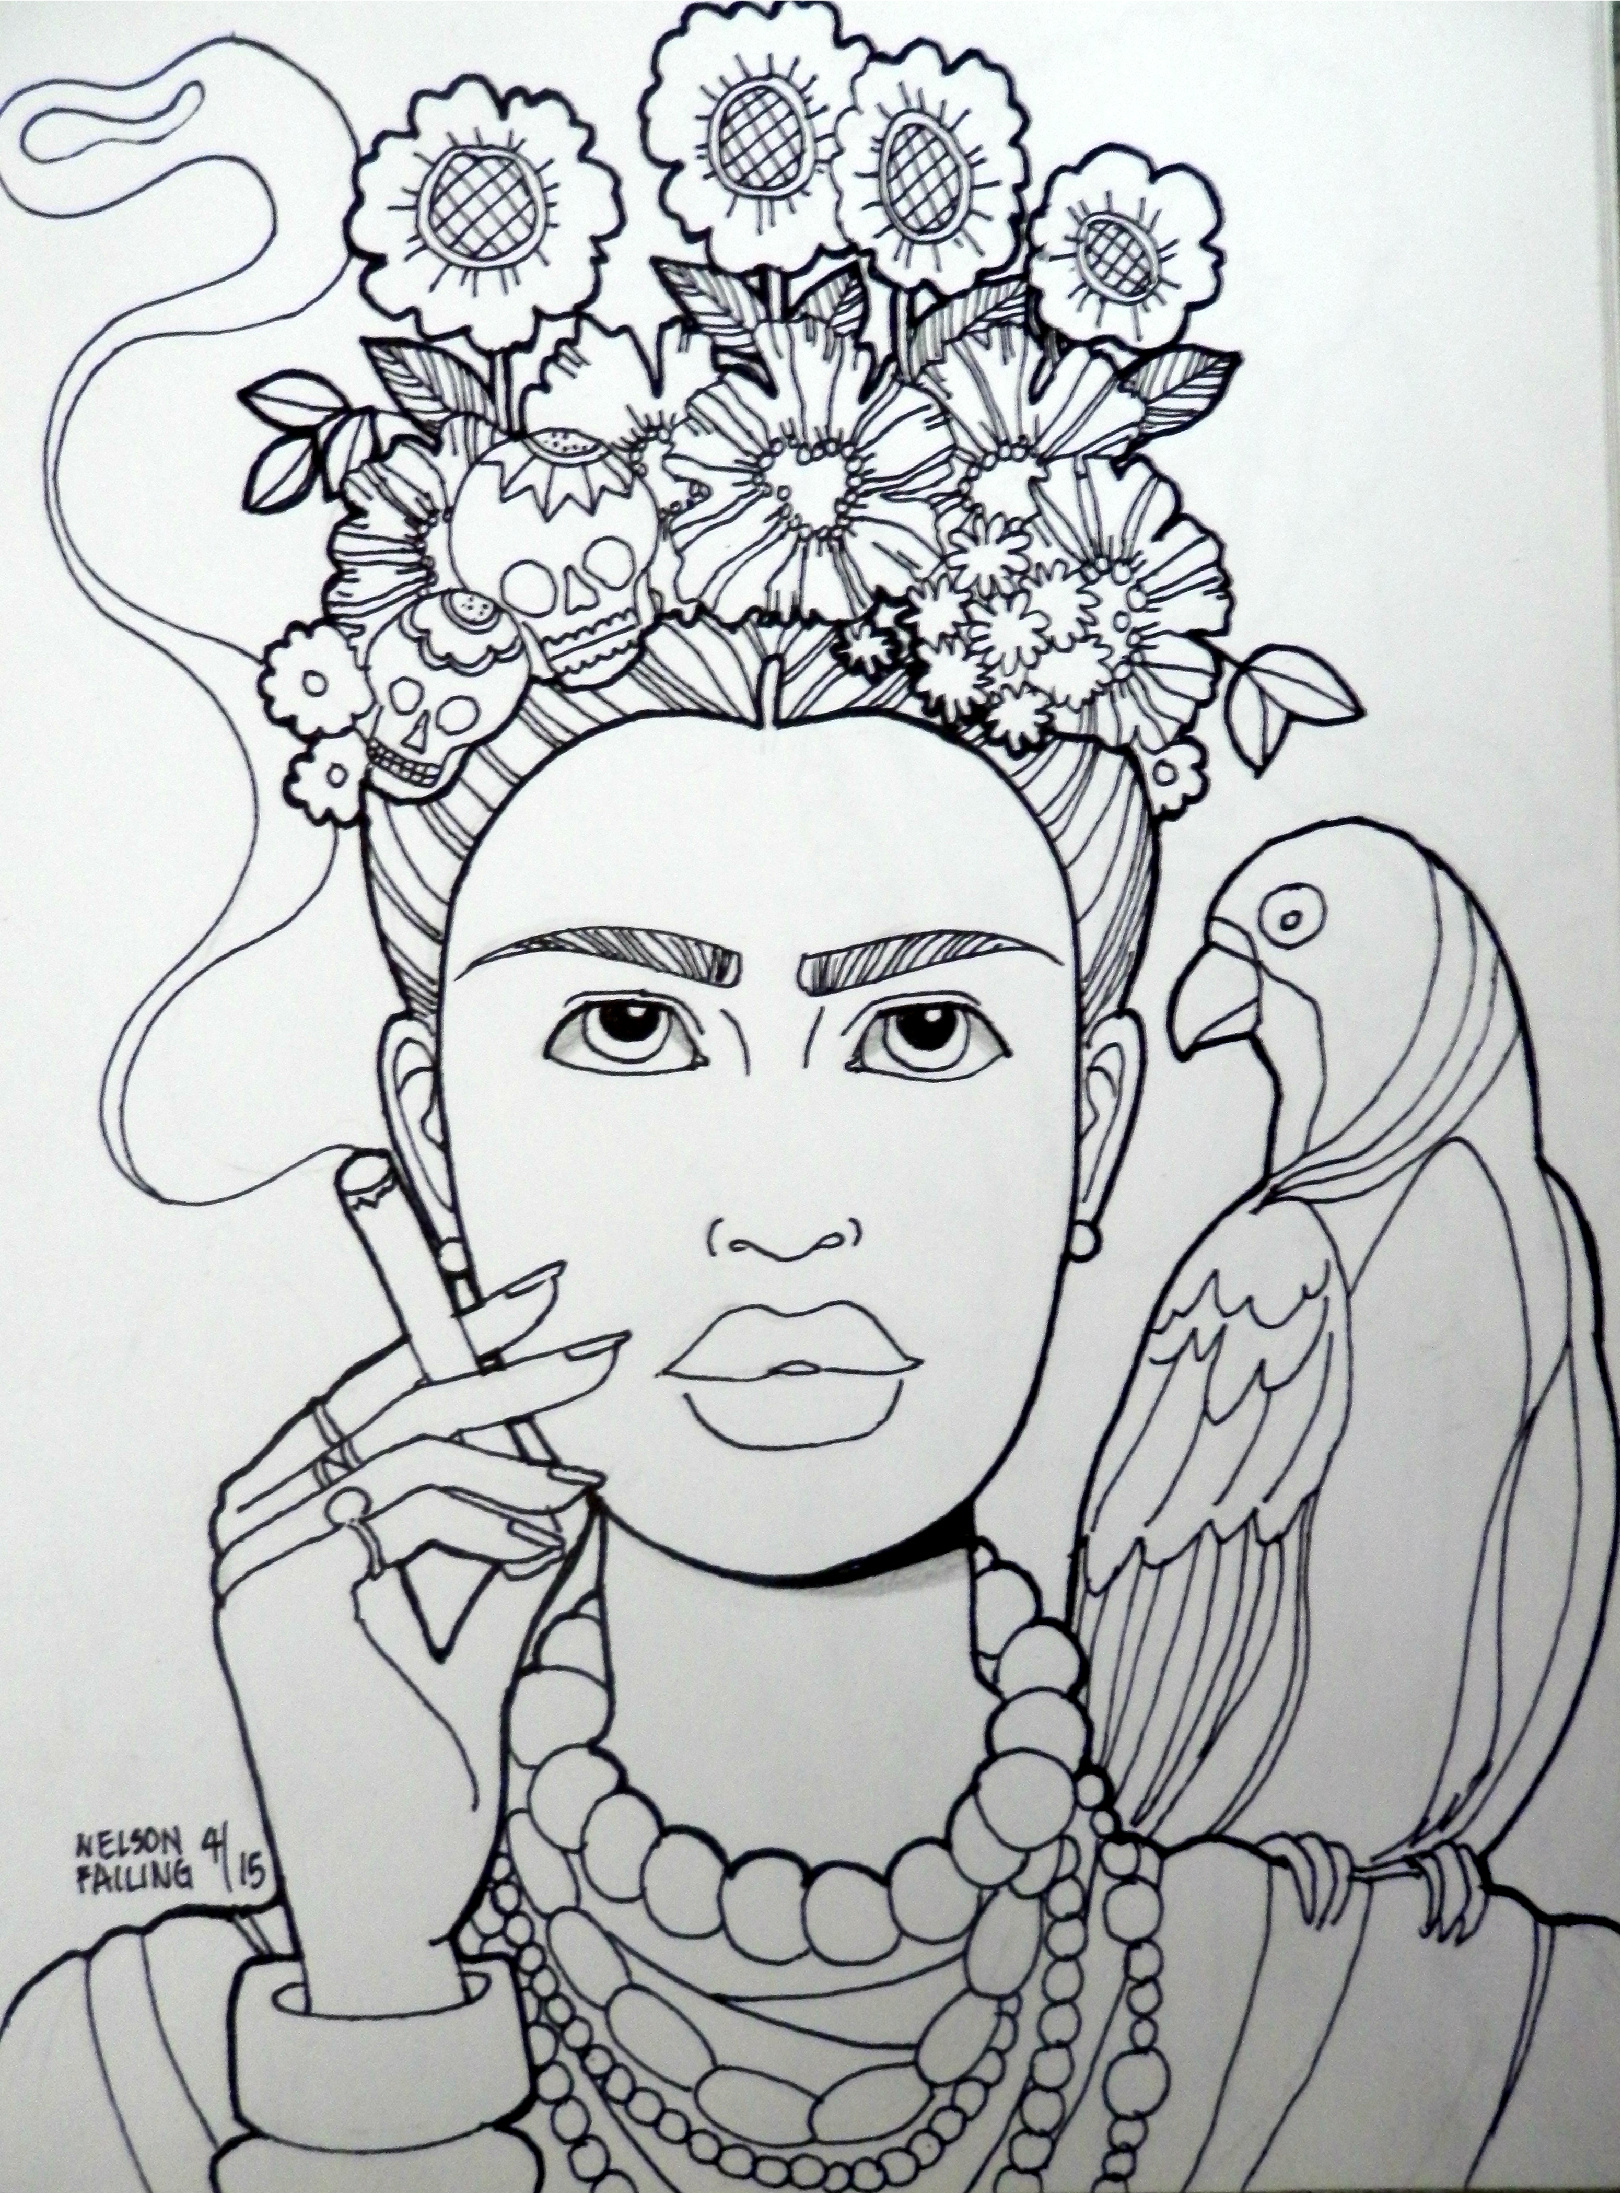 Frida Kahlo Drawing at GetDrawings.com | Free for personal use Frida ...